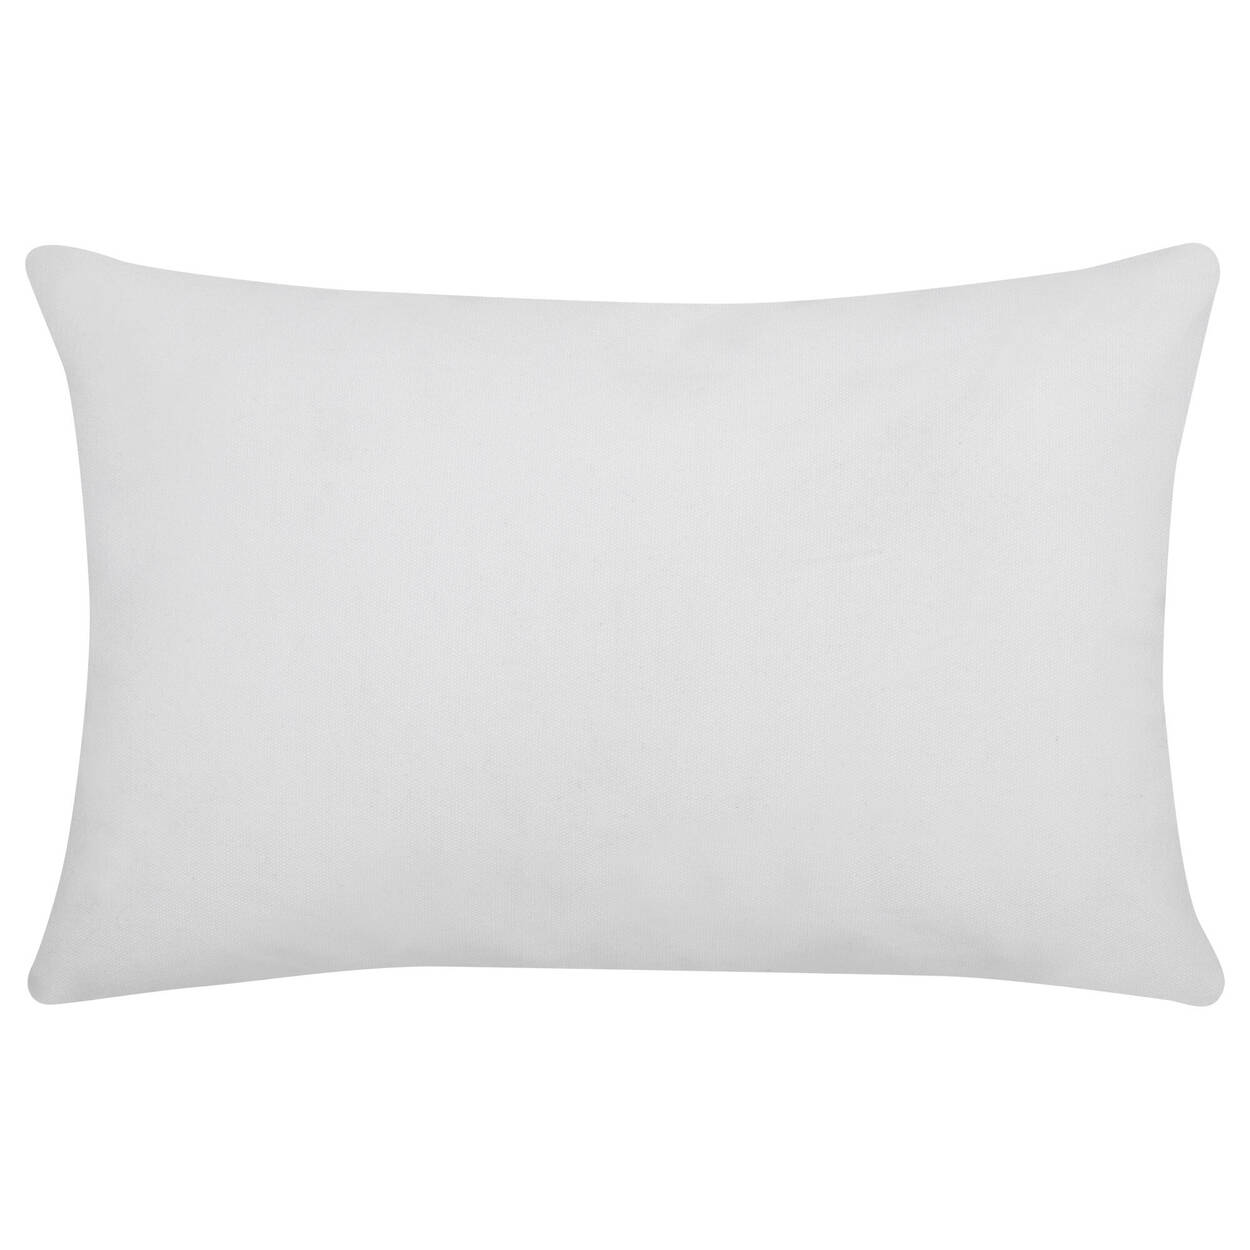 "Ova Decorative Lumbar Pillow 13"" X 20"""